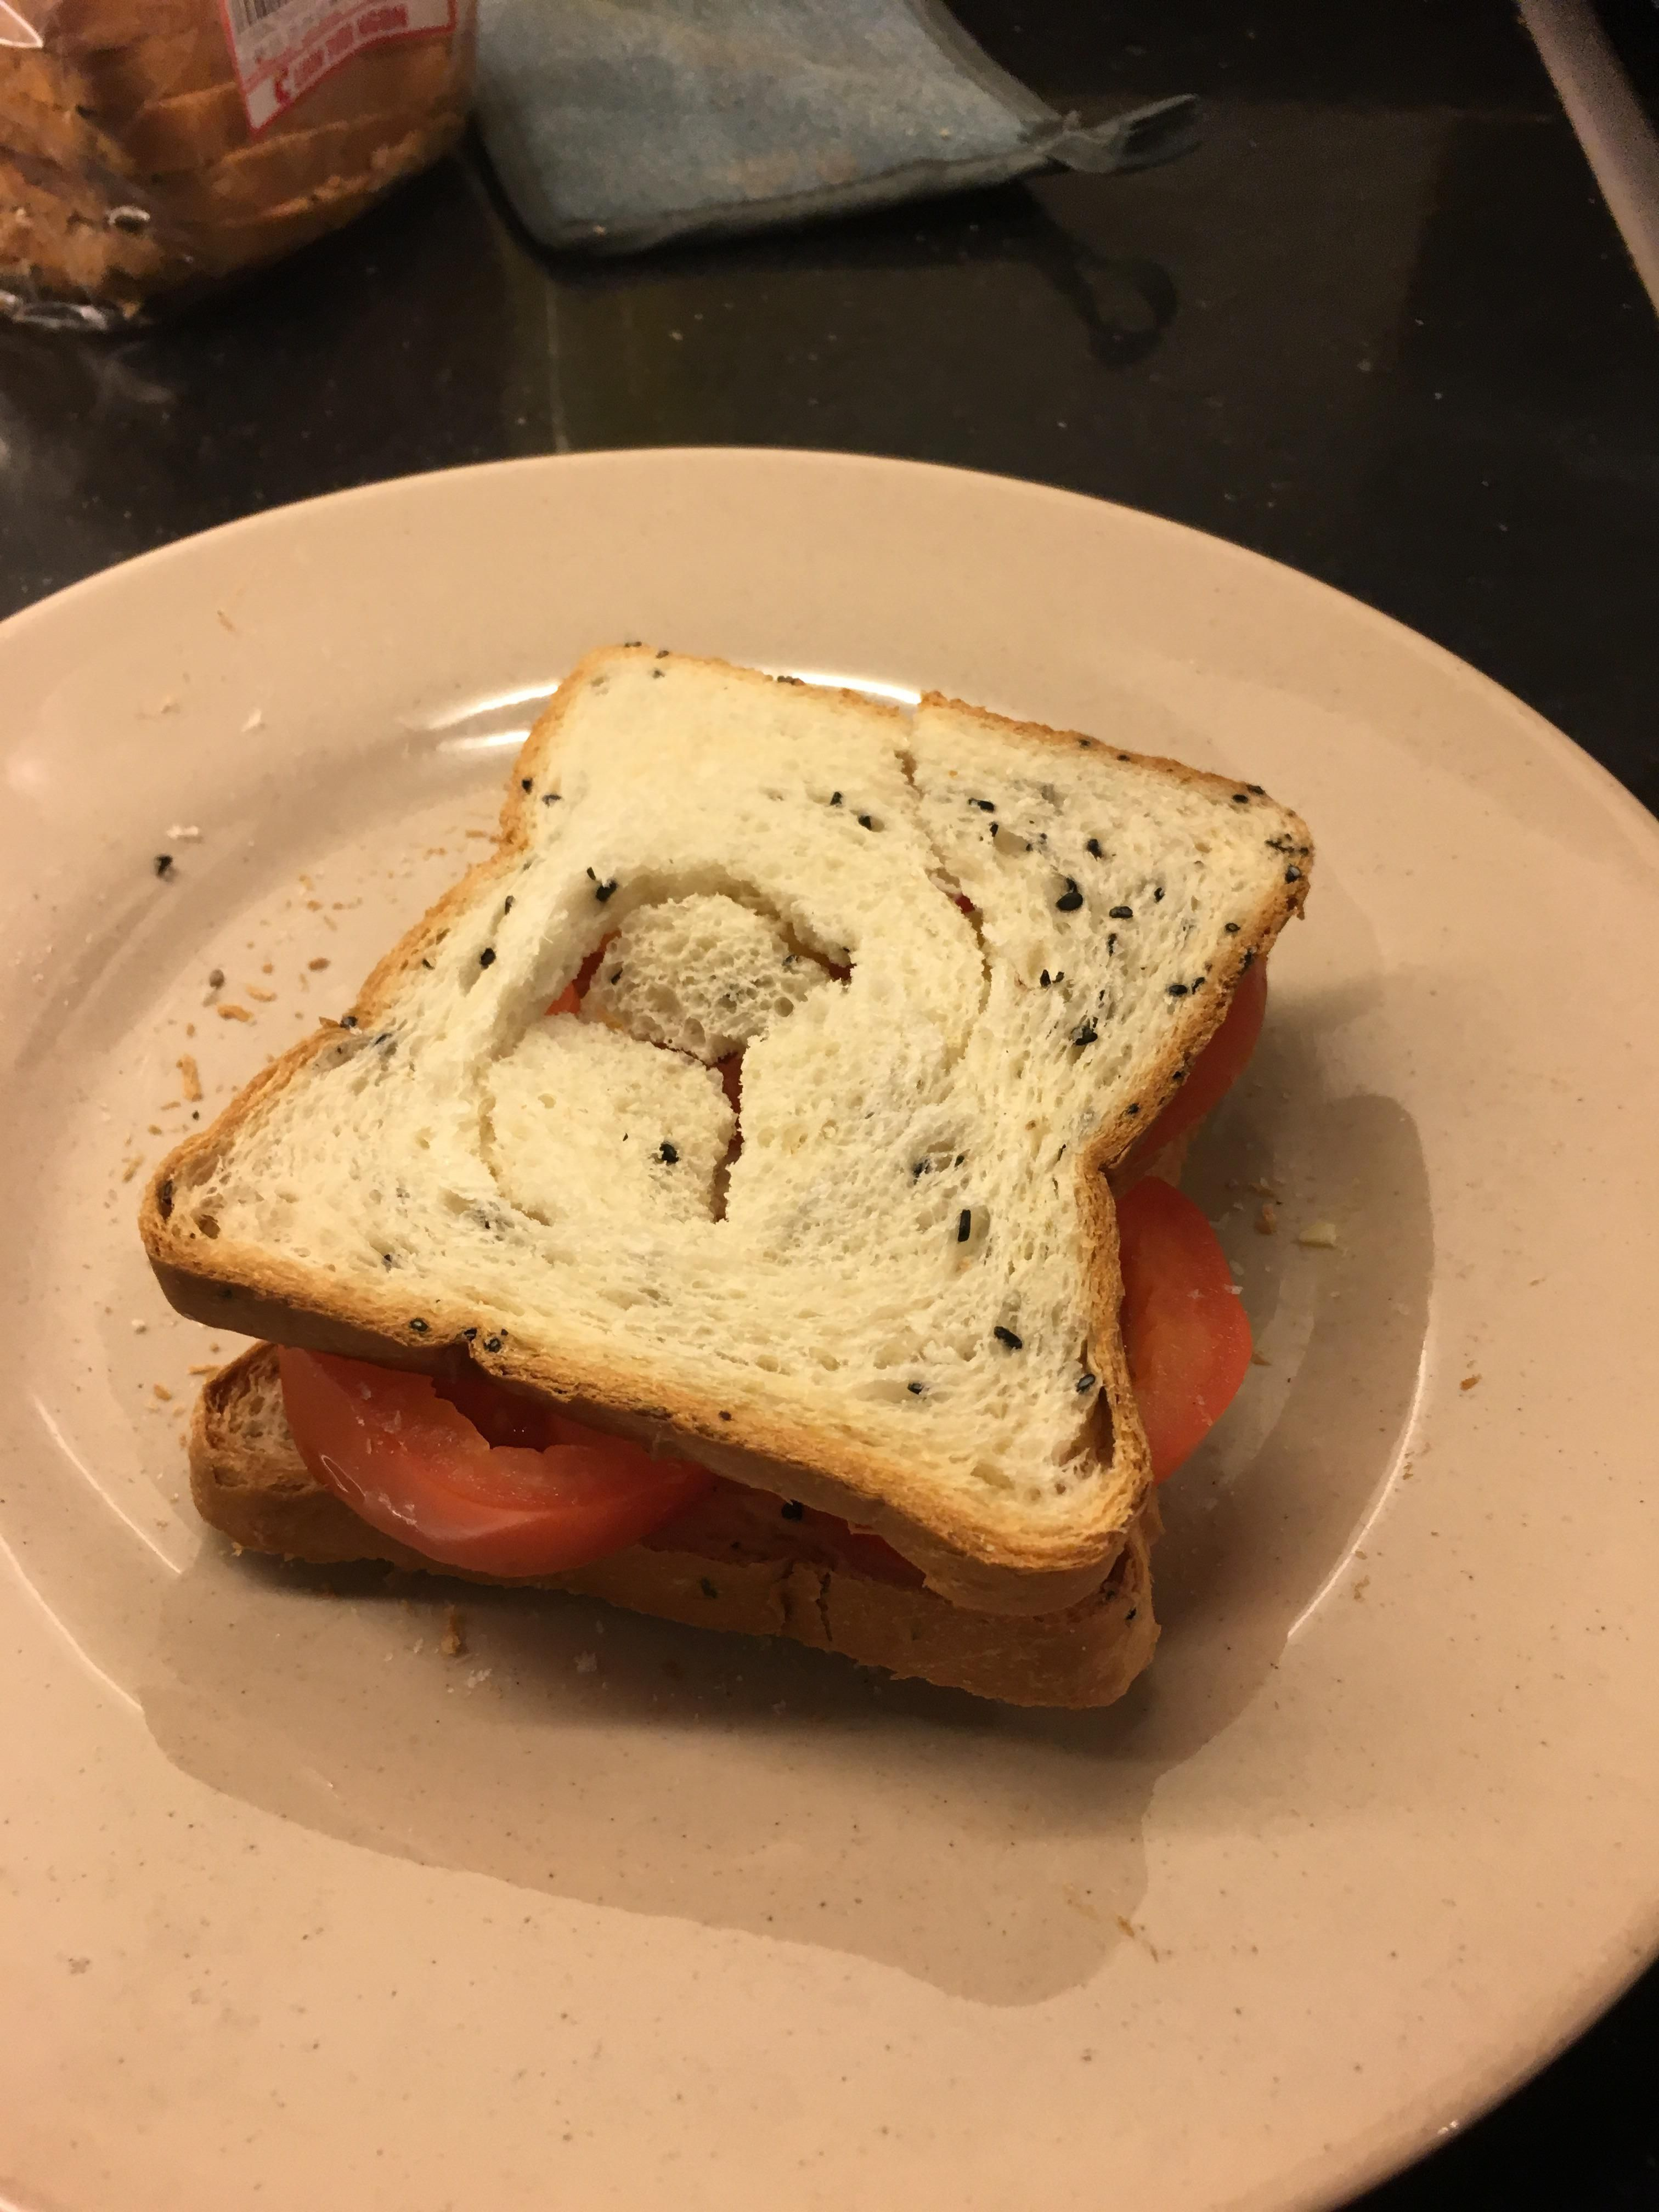 Microwaved tomato sandwich courtesy of my roommate